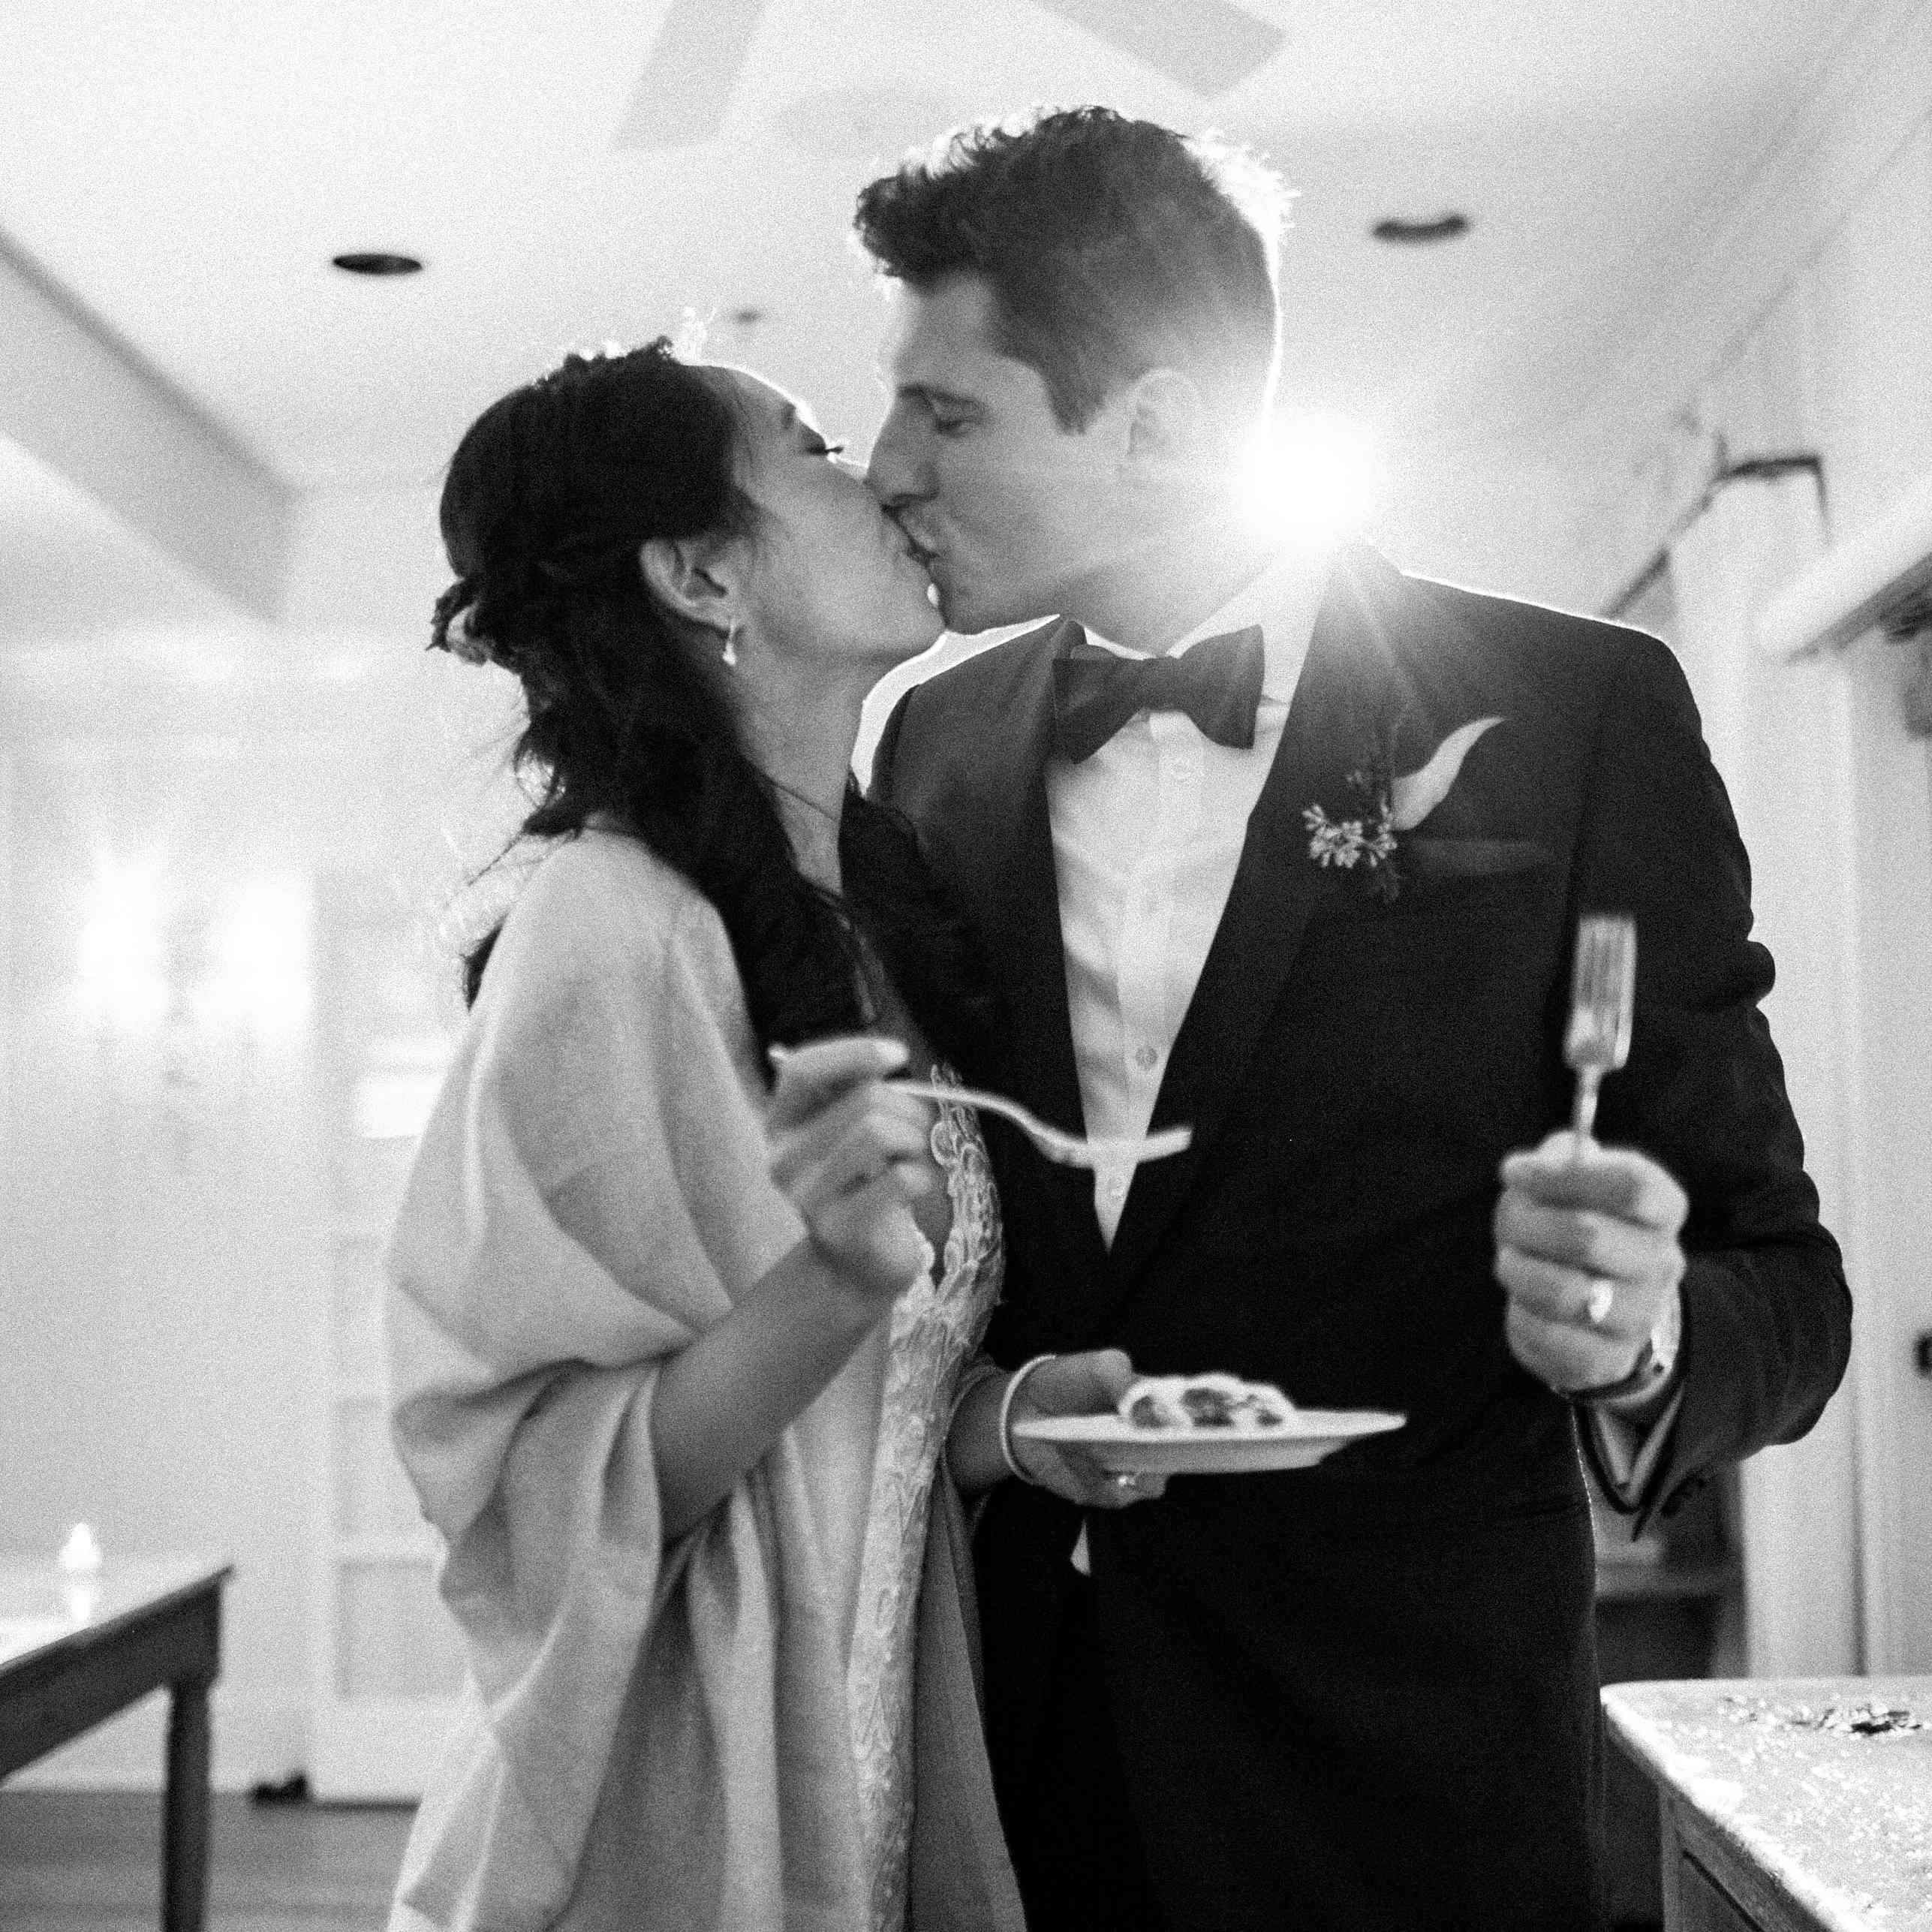 <p>eating cake kissing</p><br><br>